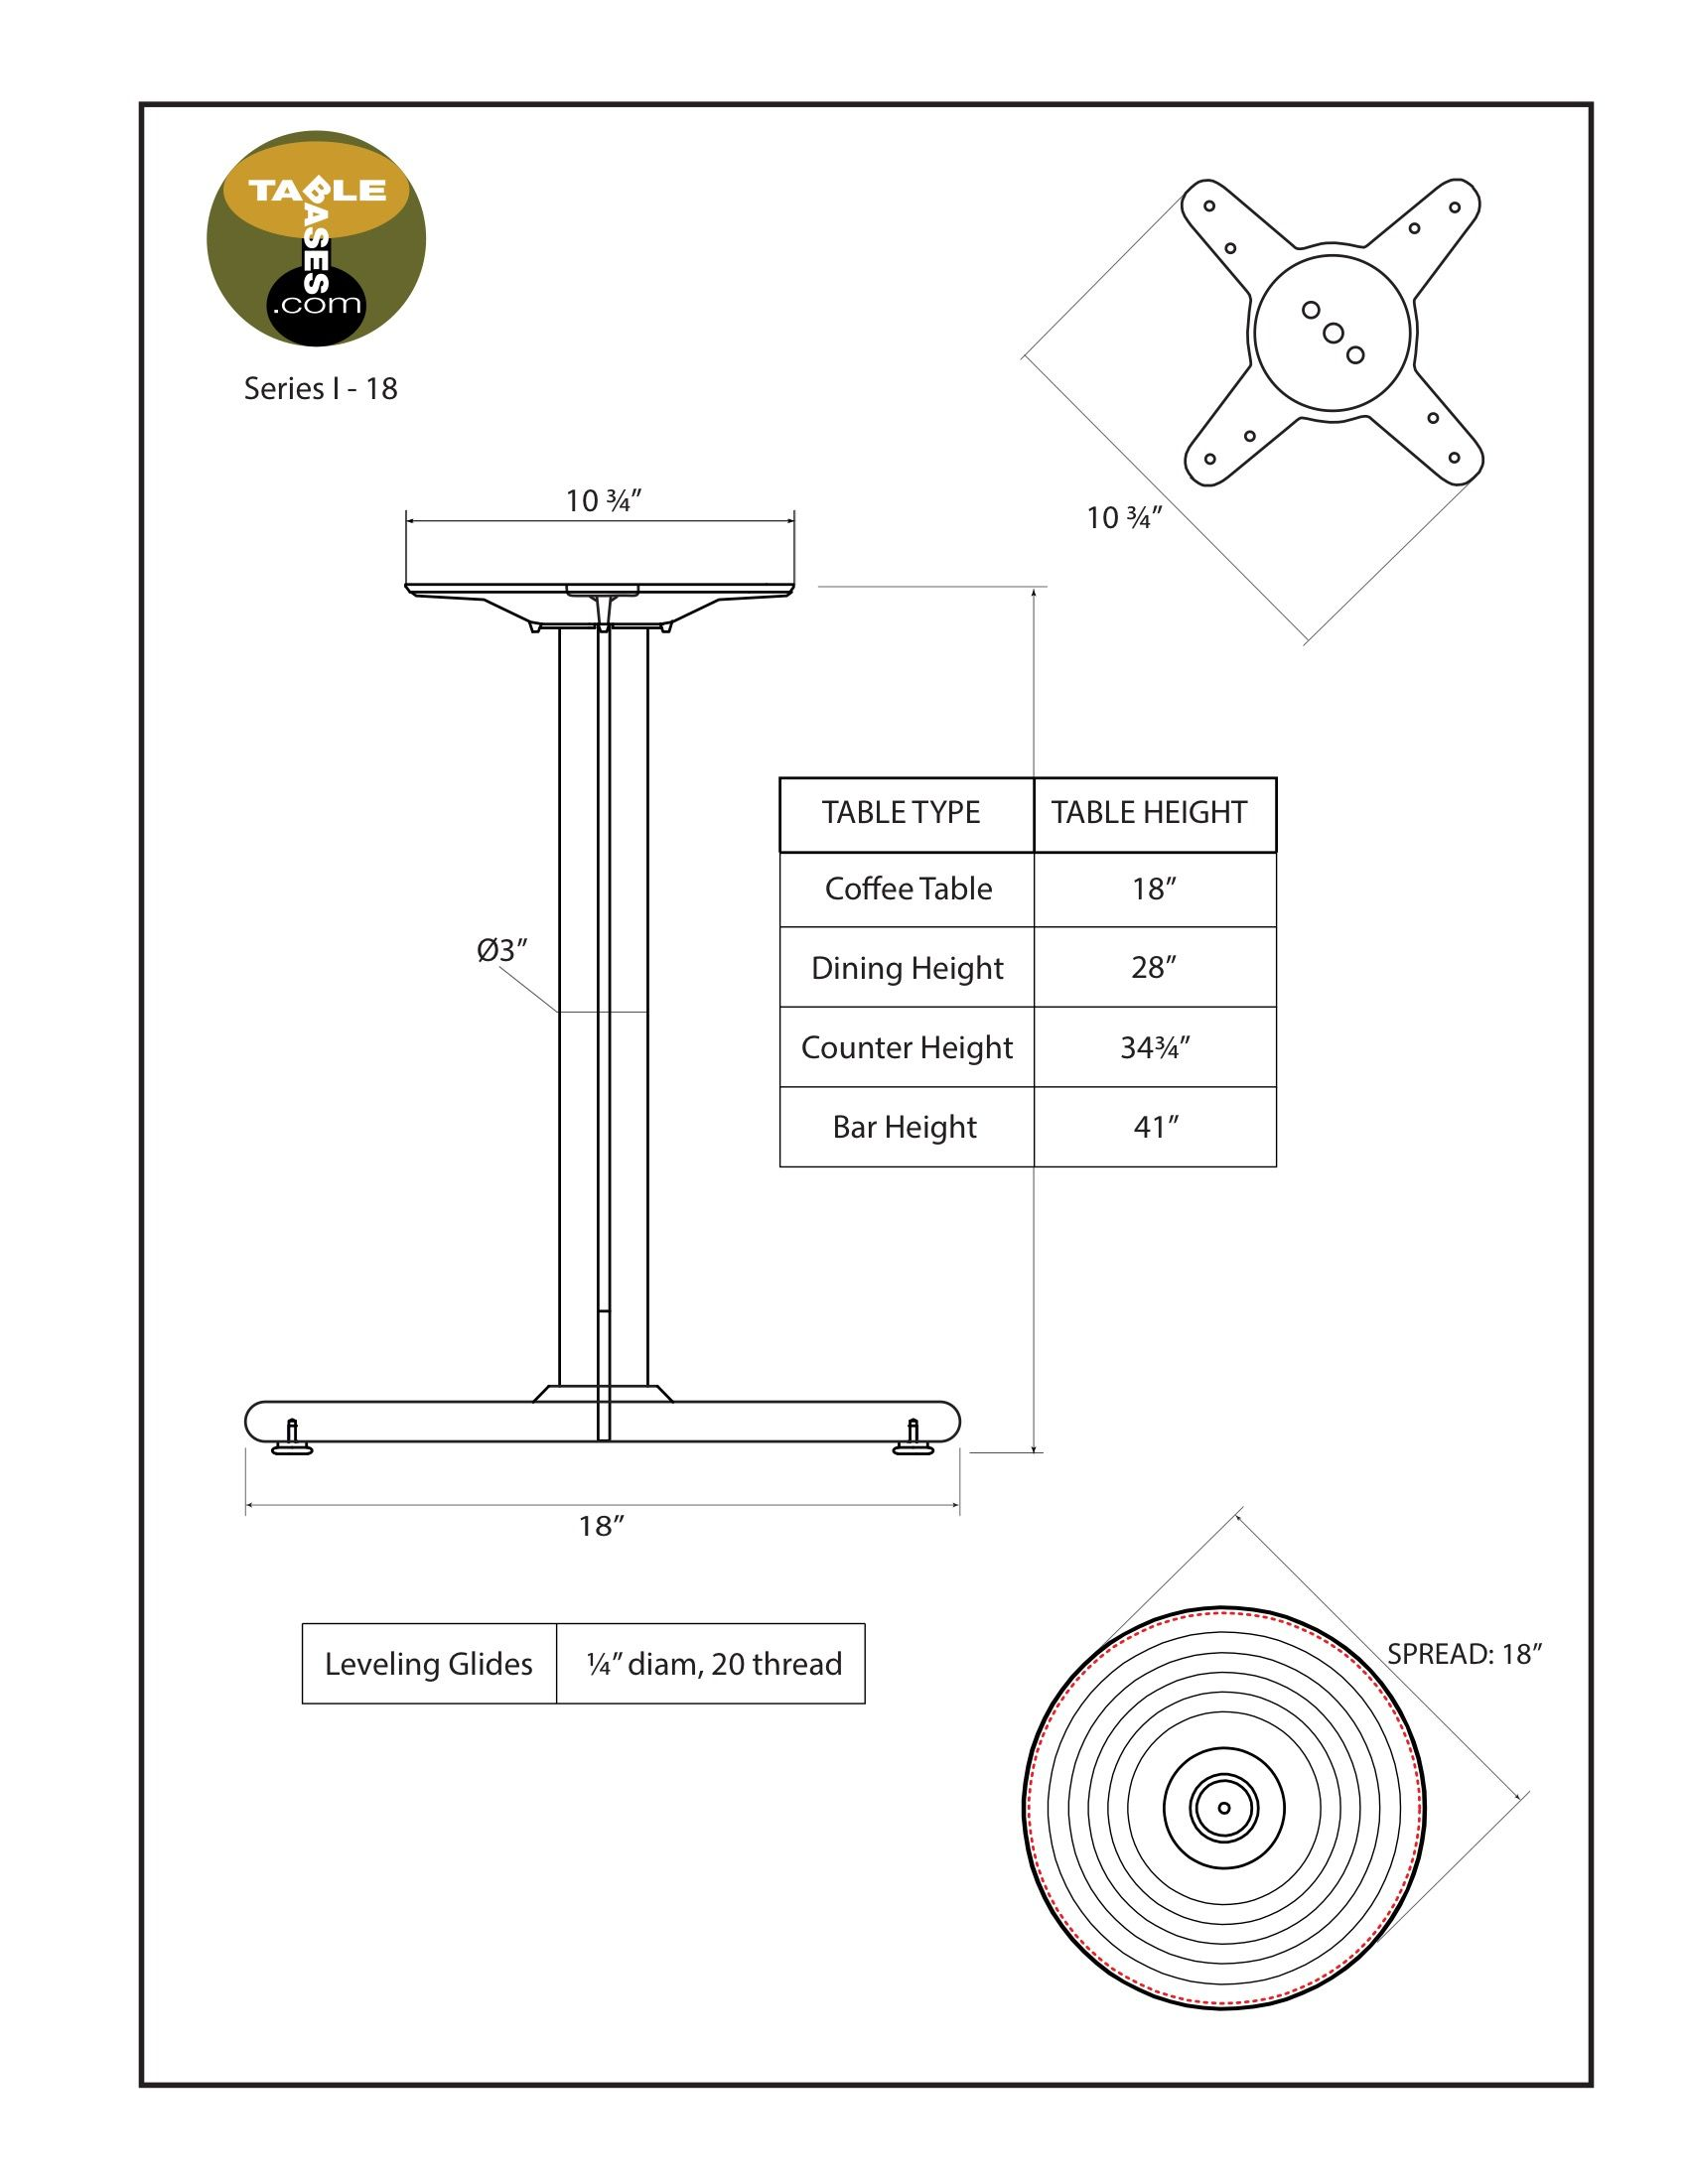 I18 Black Table Base - Specifications